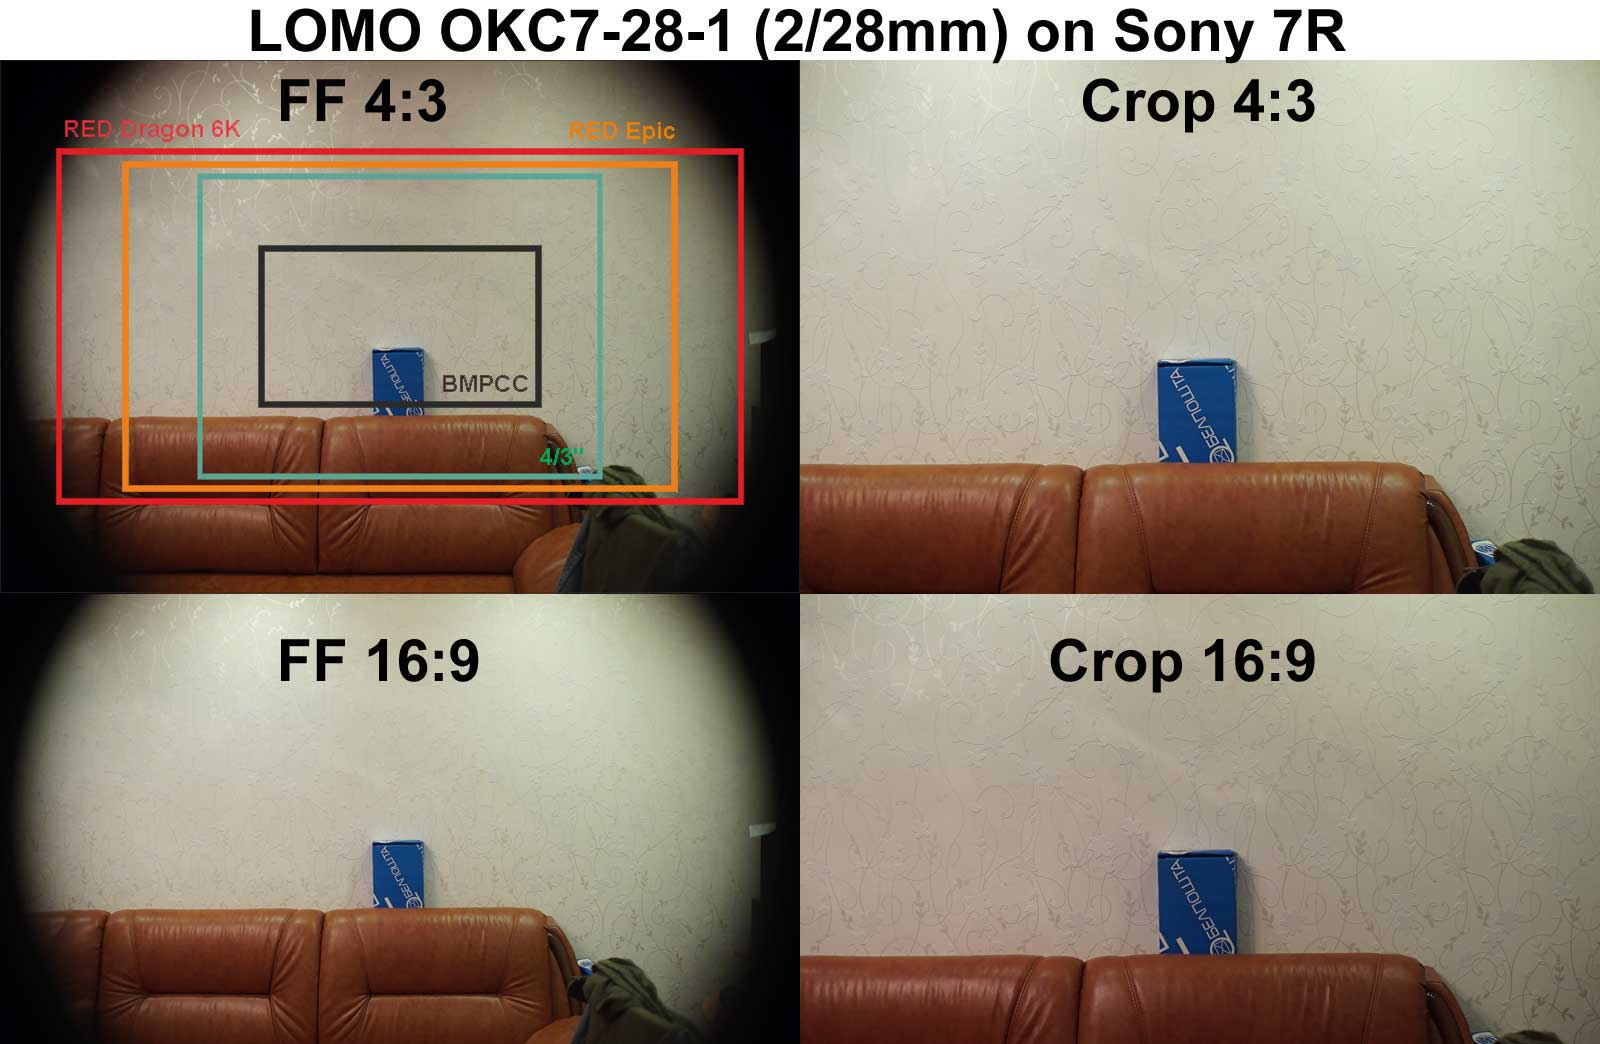 Coverage of LOMO OKC7-28-1 lens on Sony 7R camera